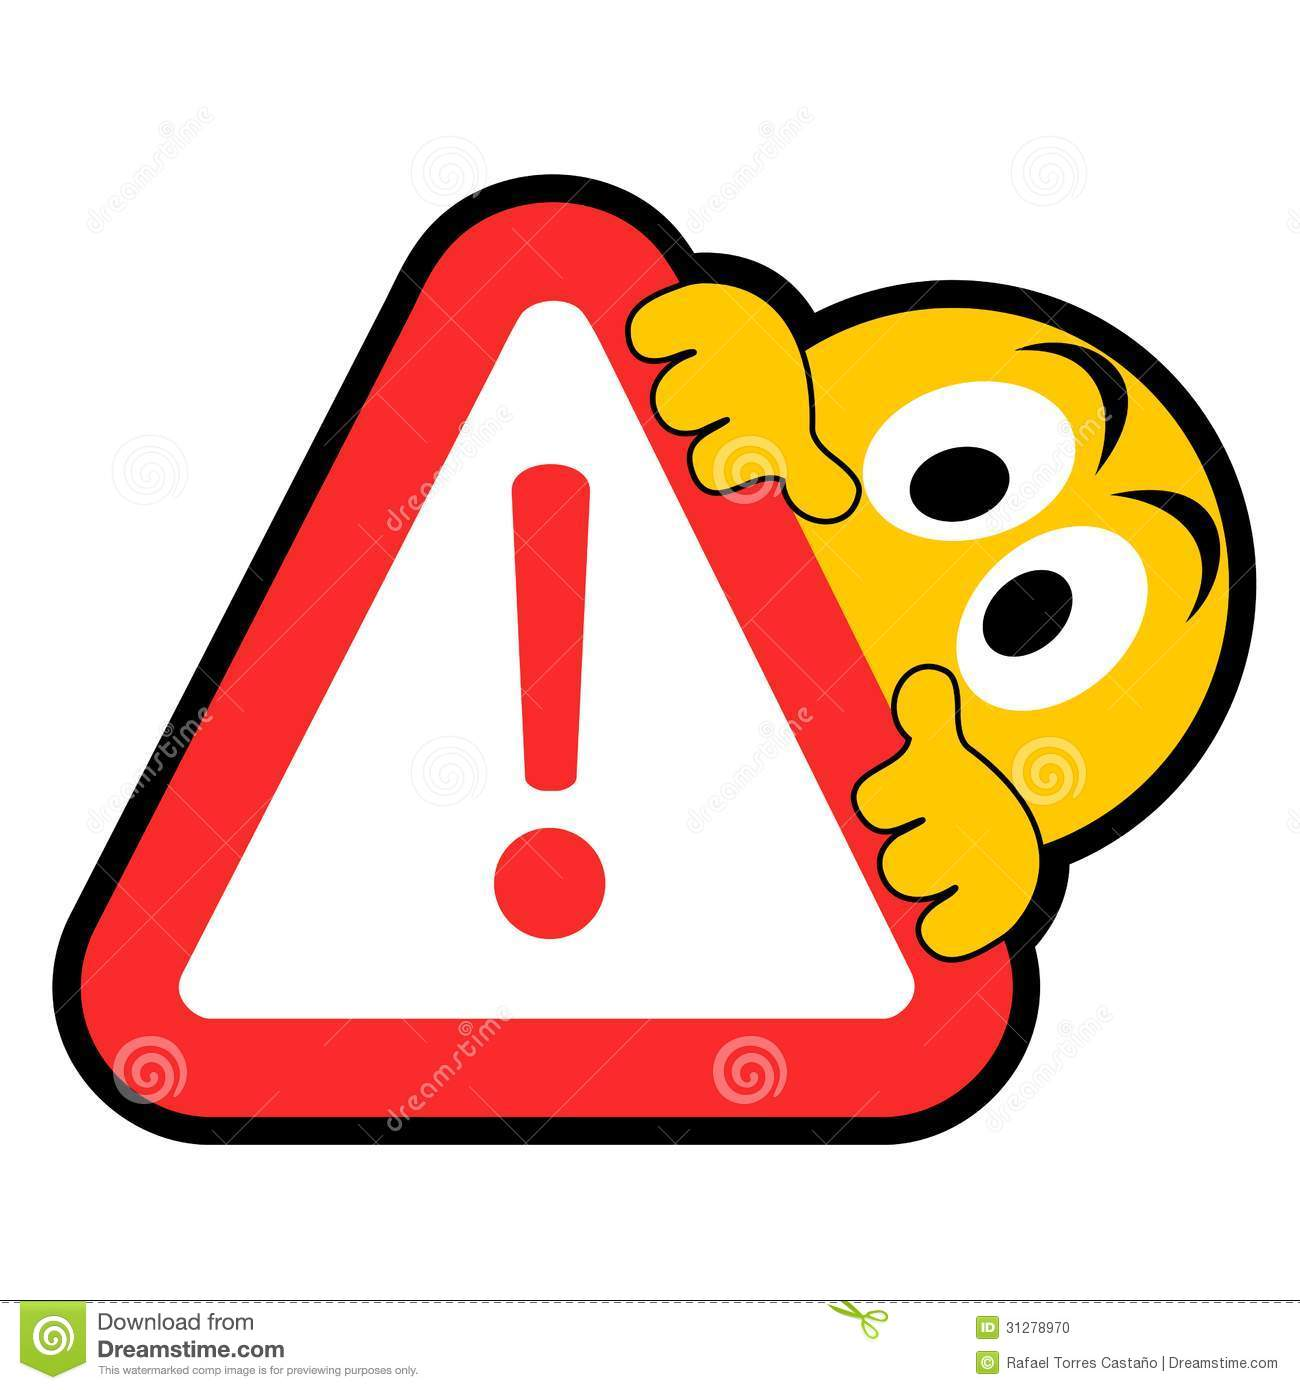 Error Cartoon Stock Photo - Image: 31278970